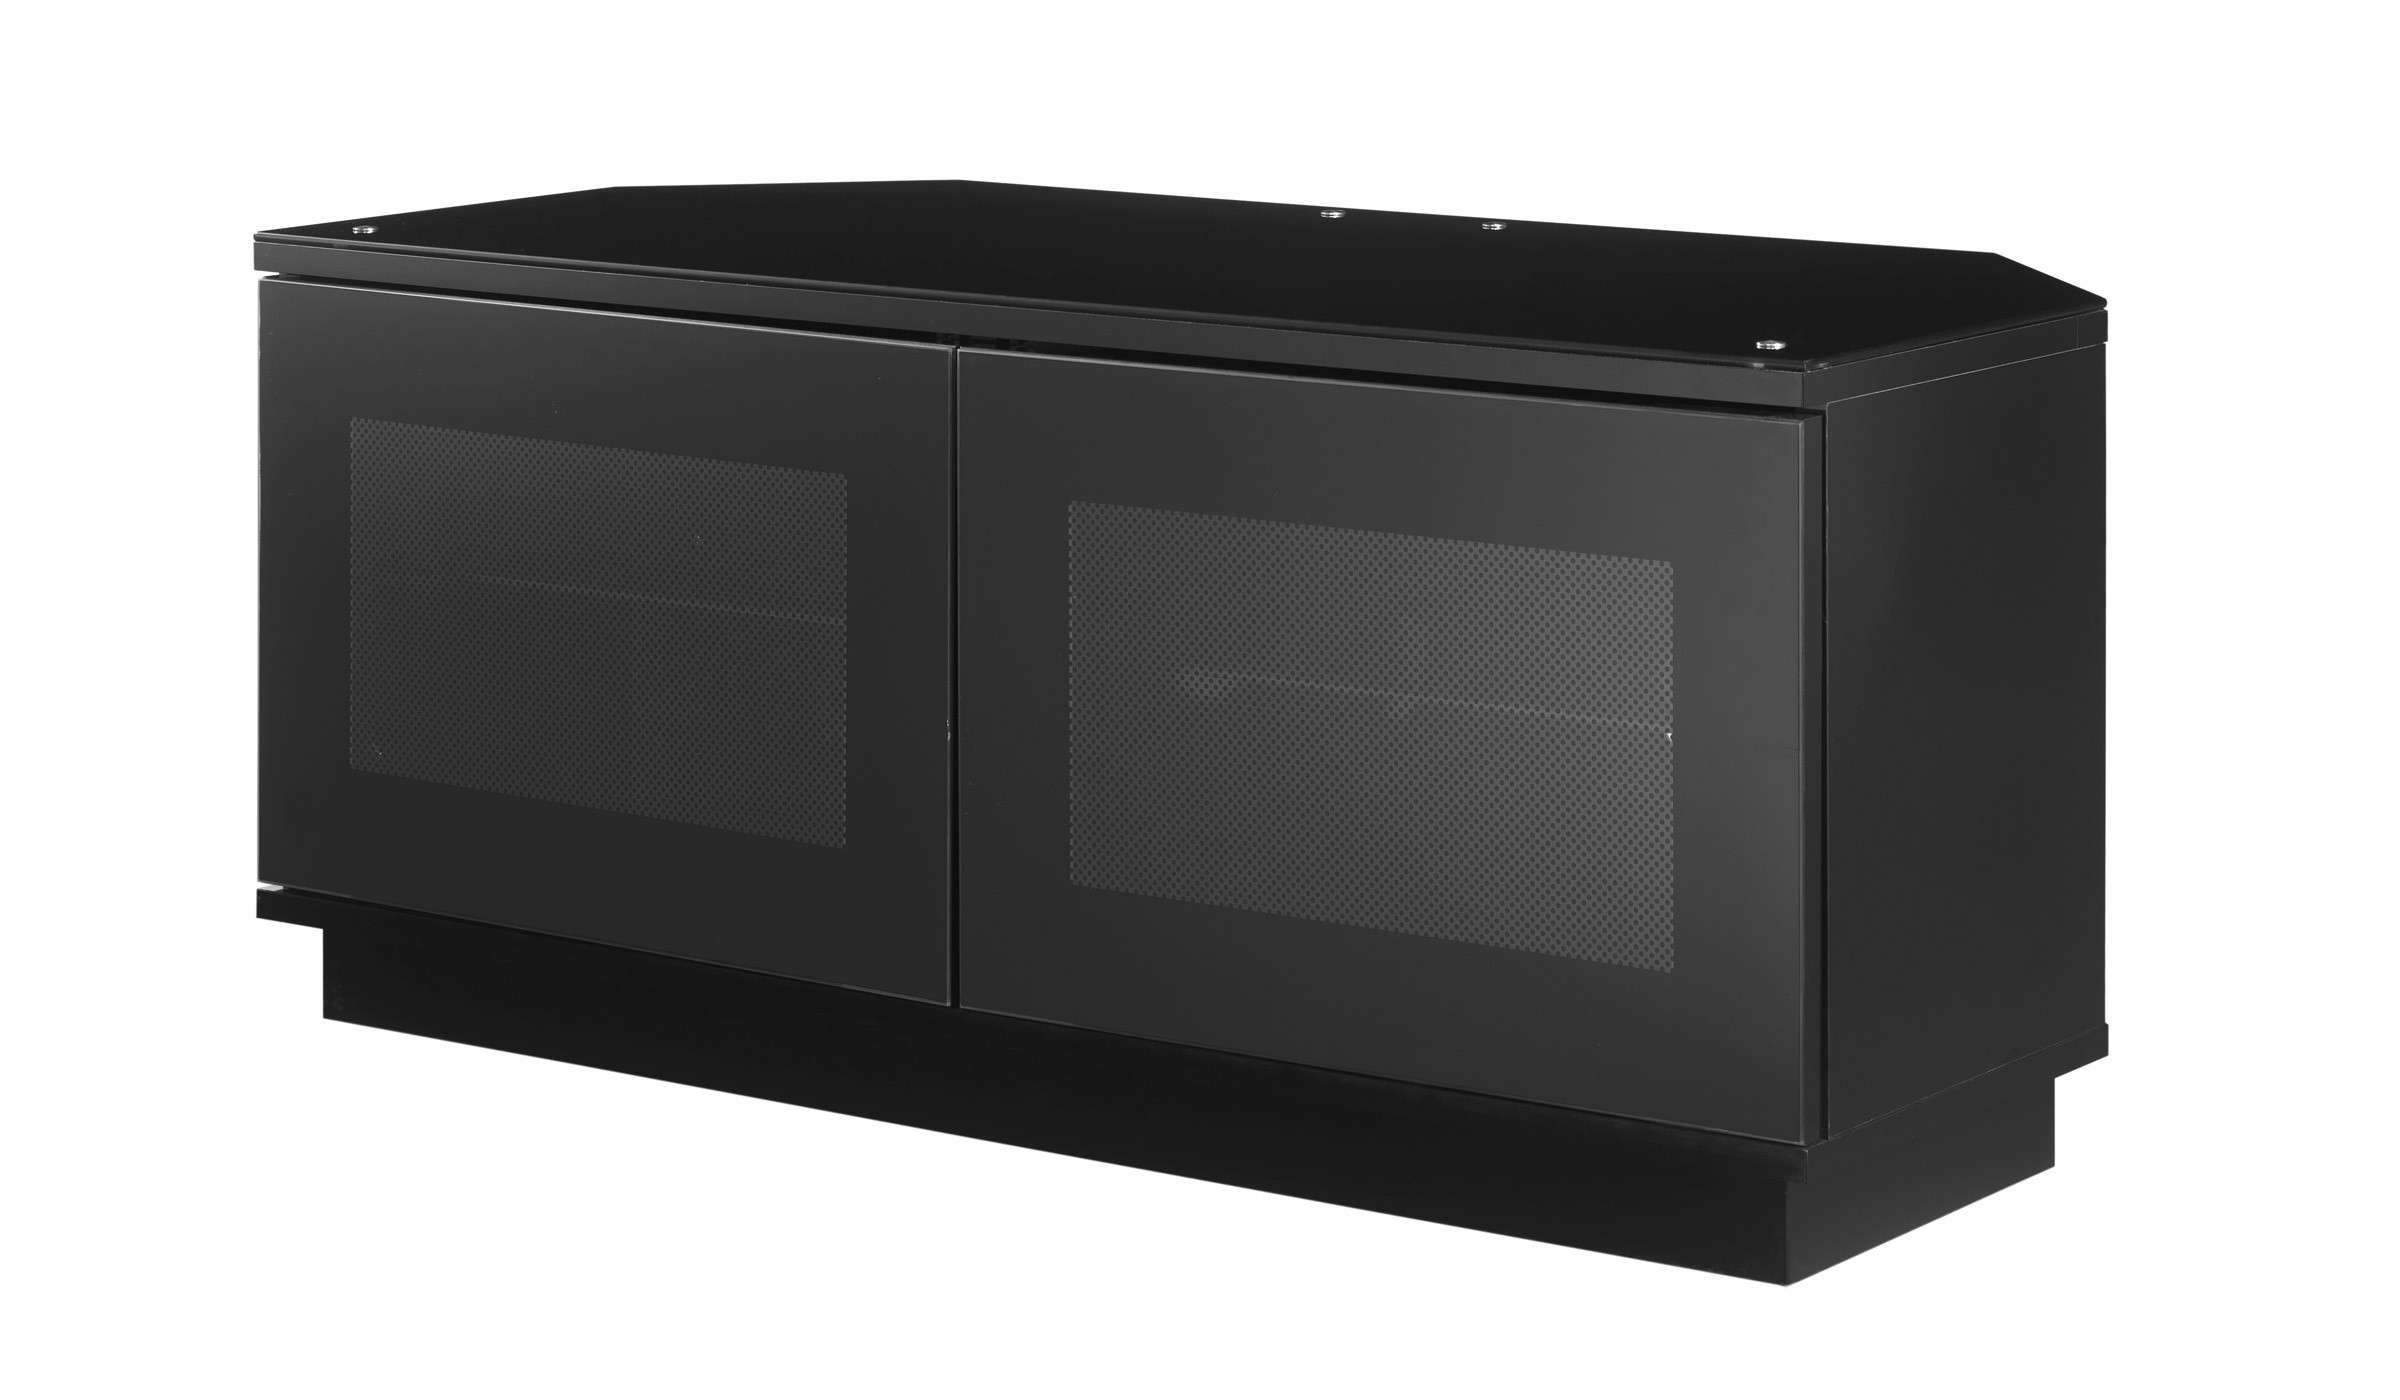 Small Black Tv Stand Cabinet With Door For Corner – Decofurnish Within Black Tv Cabinets With Doors (View 3 of 20)